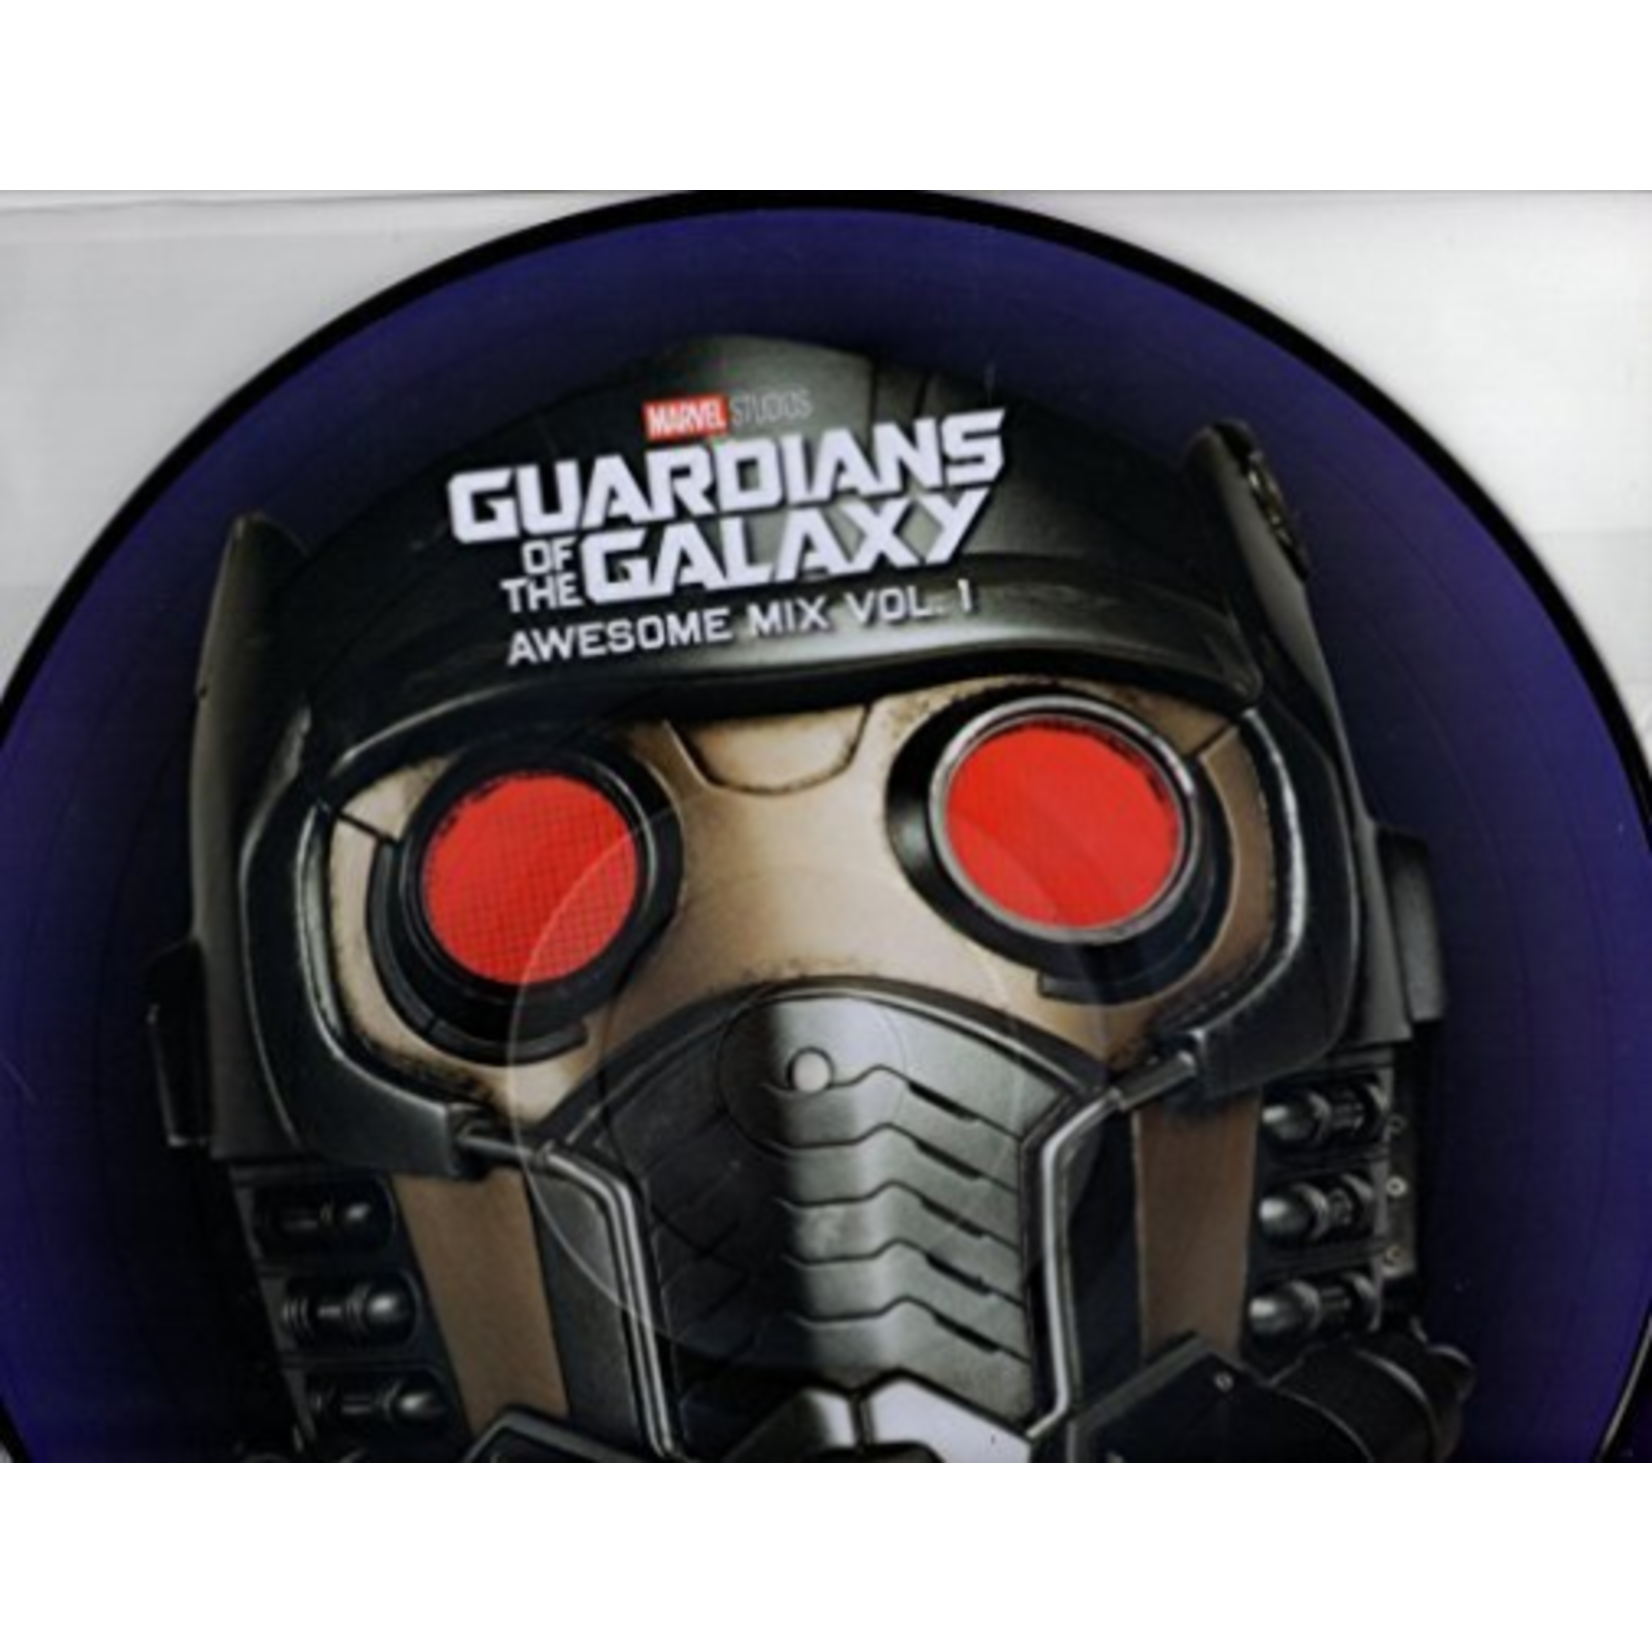 VARIOUS ARTISTS GUARDIANS OF THE GALAXY: AWESOME MIX VOL. 1 (PICTURE DISC)